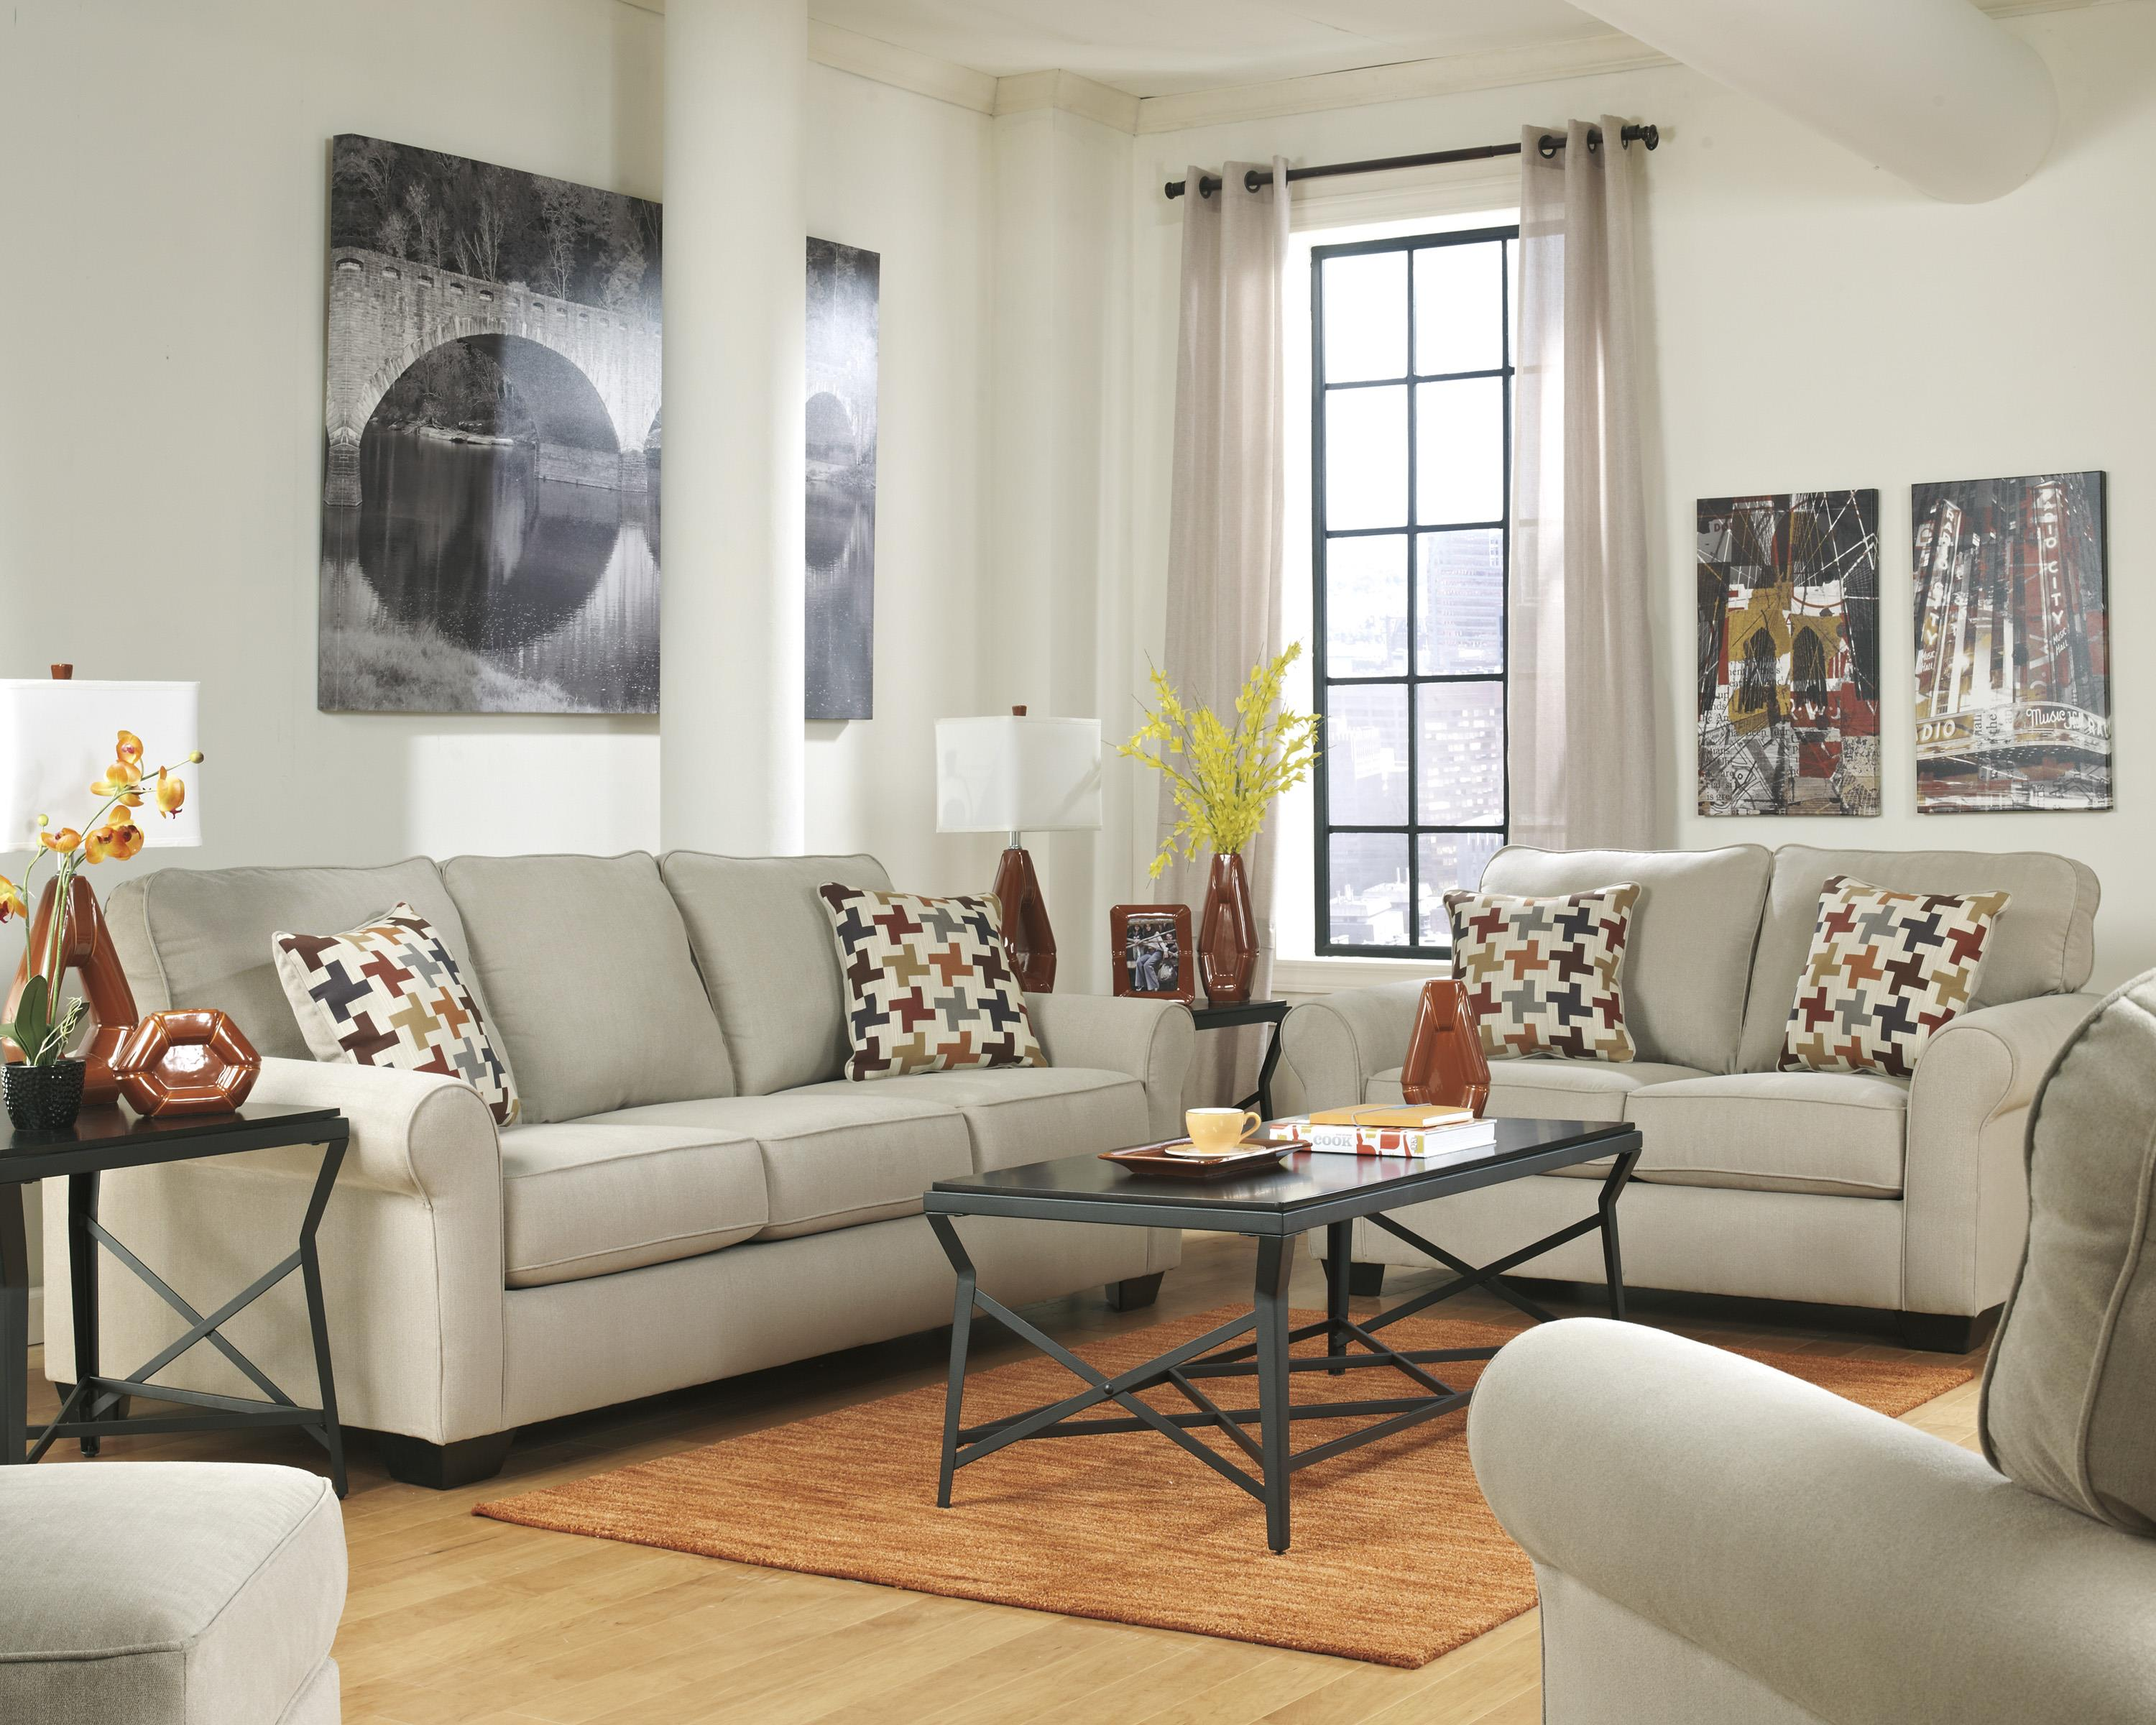 Ashley Furniture Caci Stationary Living Room Group - Item Number: 88202 Living Room Group 2